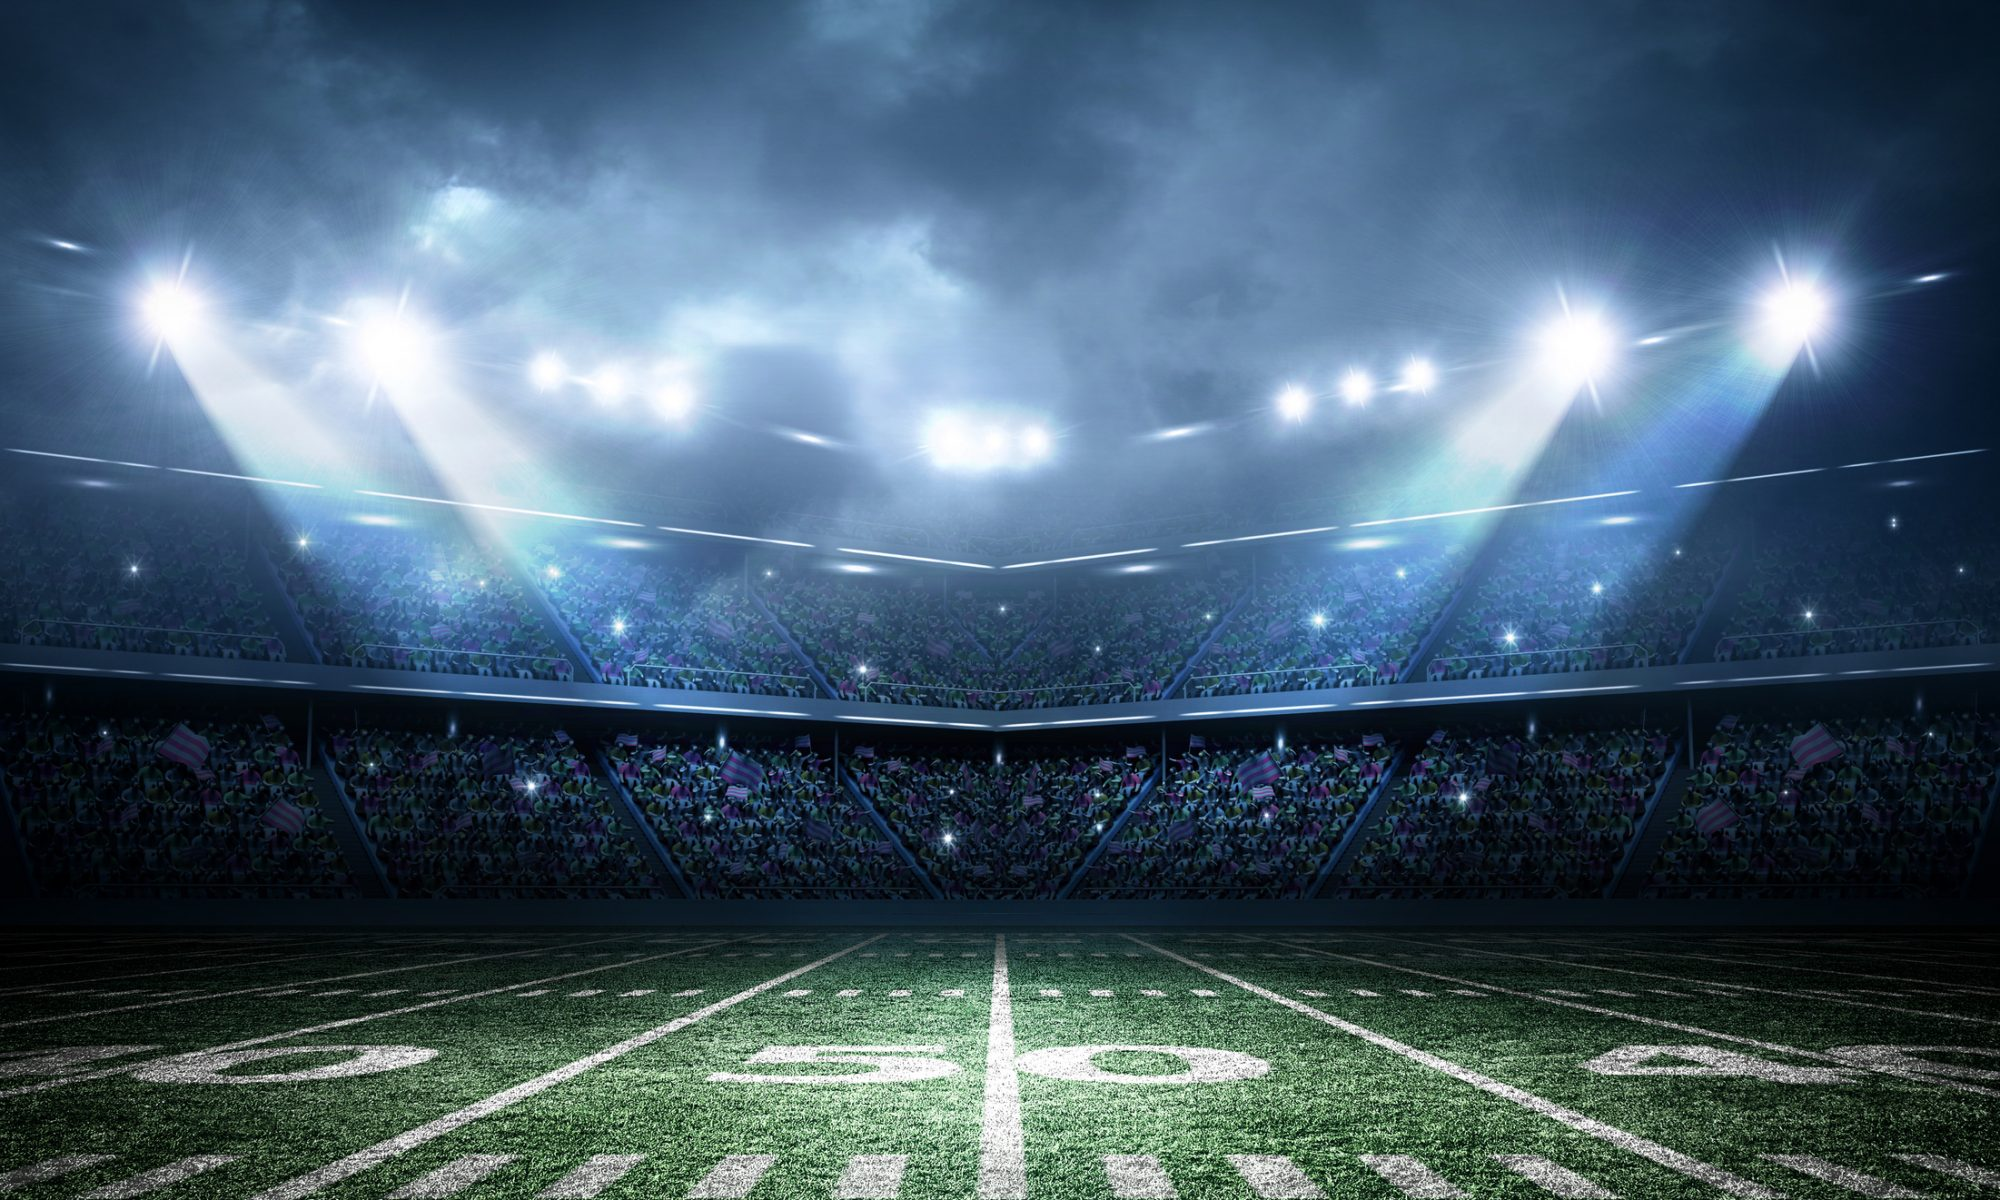 IoT applications in sports